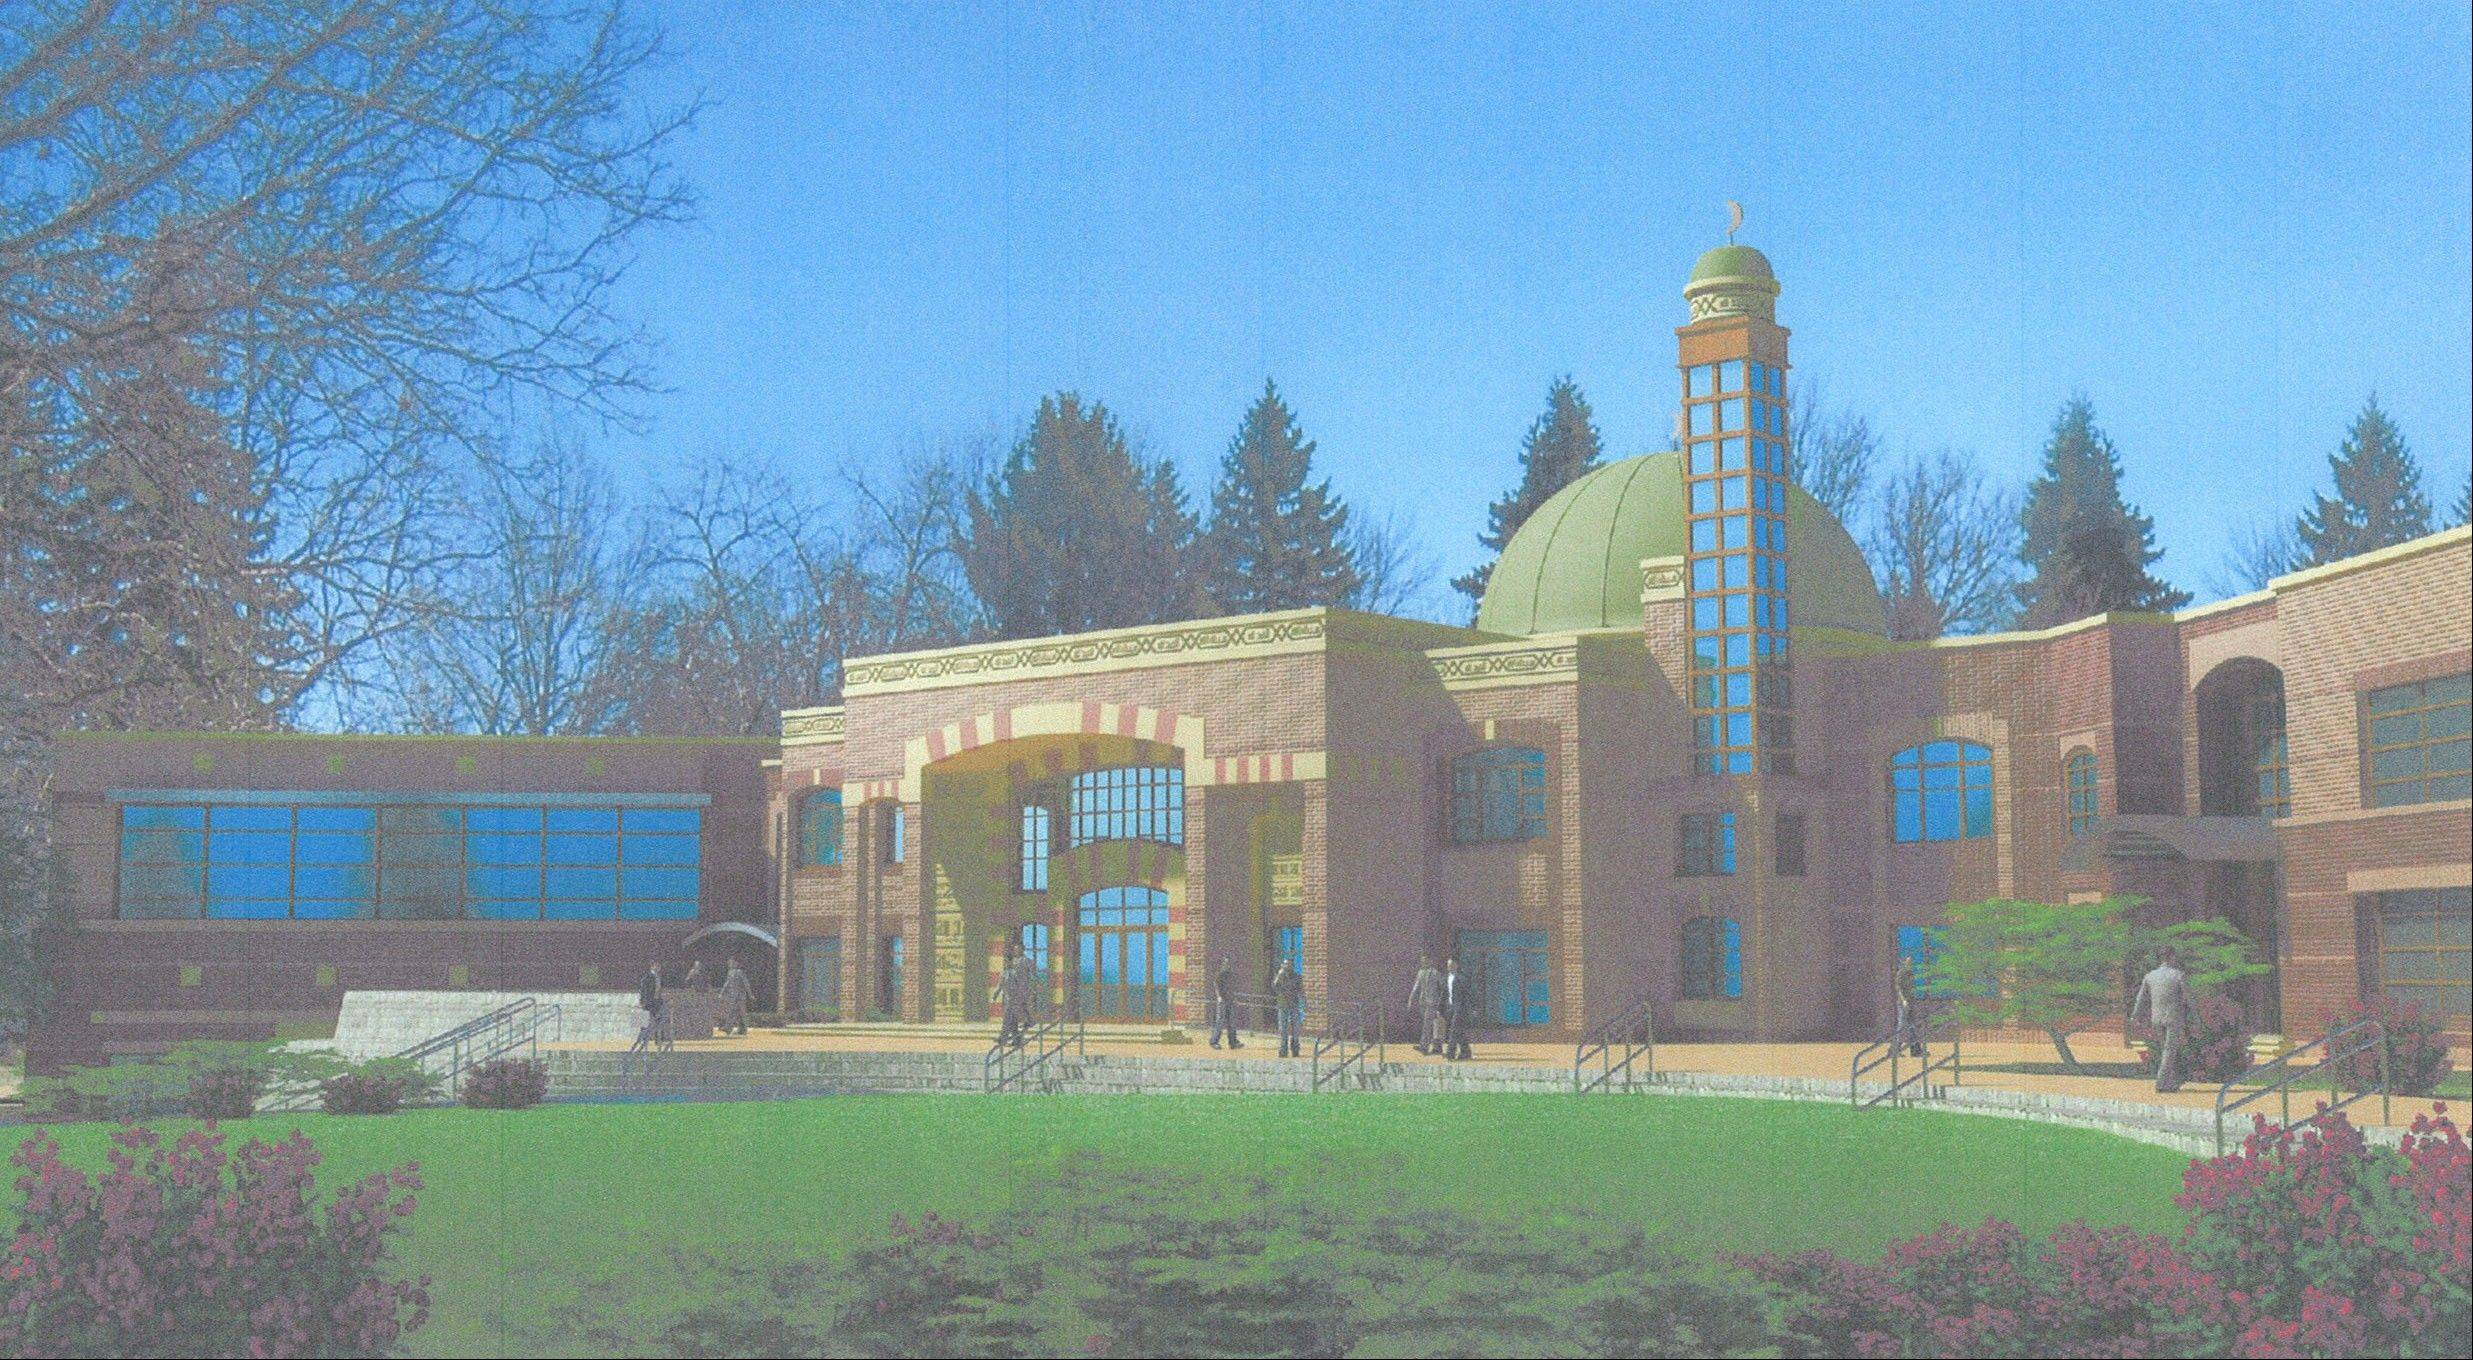 Muslim Educational and Cultural Center of America won't be allowed to exceed a DuPage County height restriction when it builds a mosque near Willowbrook.